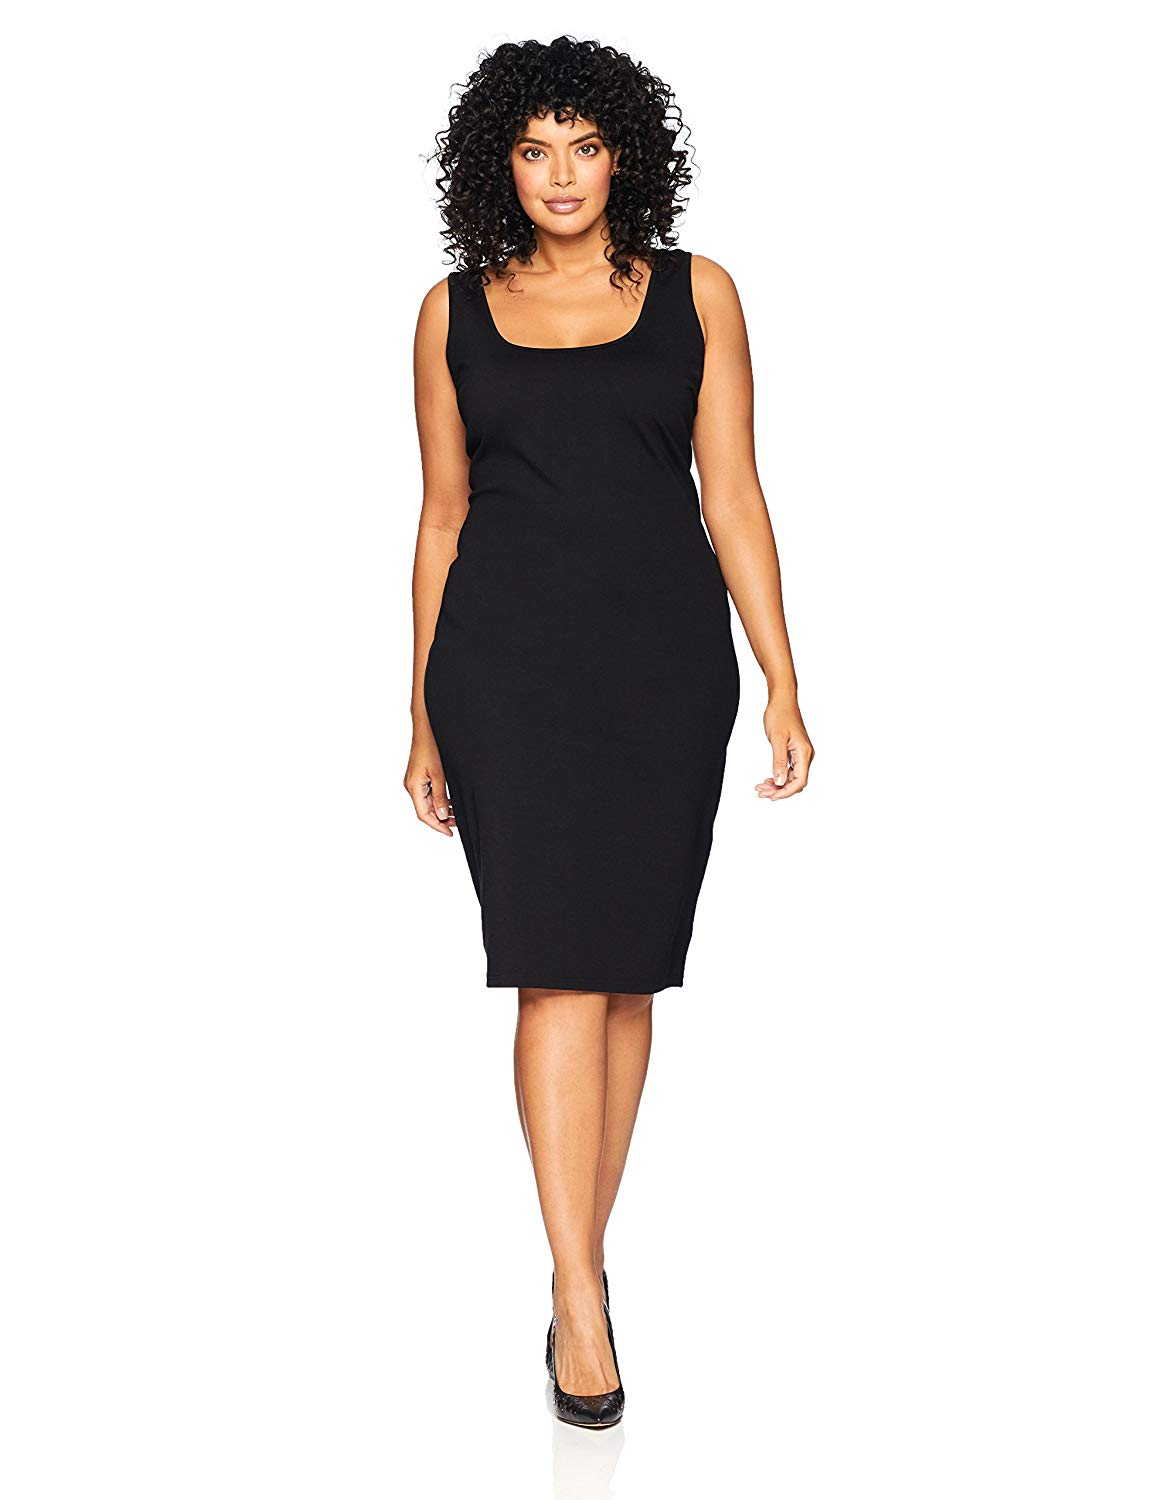 City Chic Women's Apparel Women's Plus Size Dress Body Con Blk